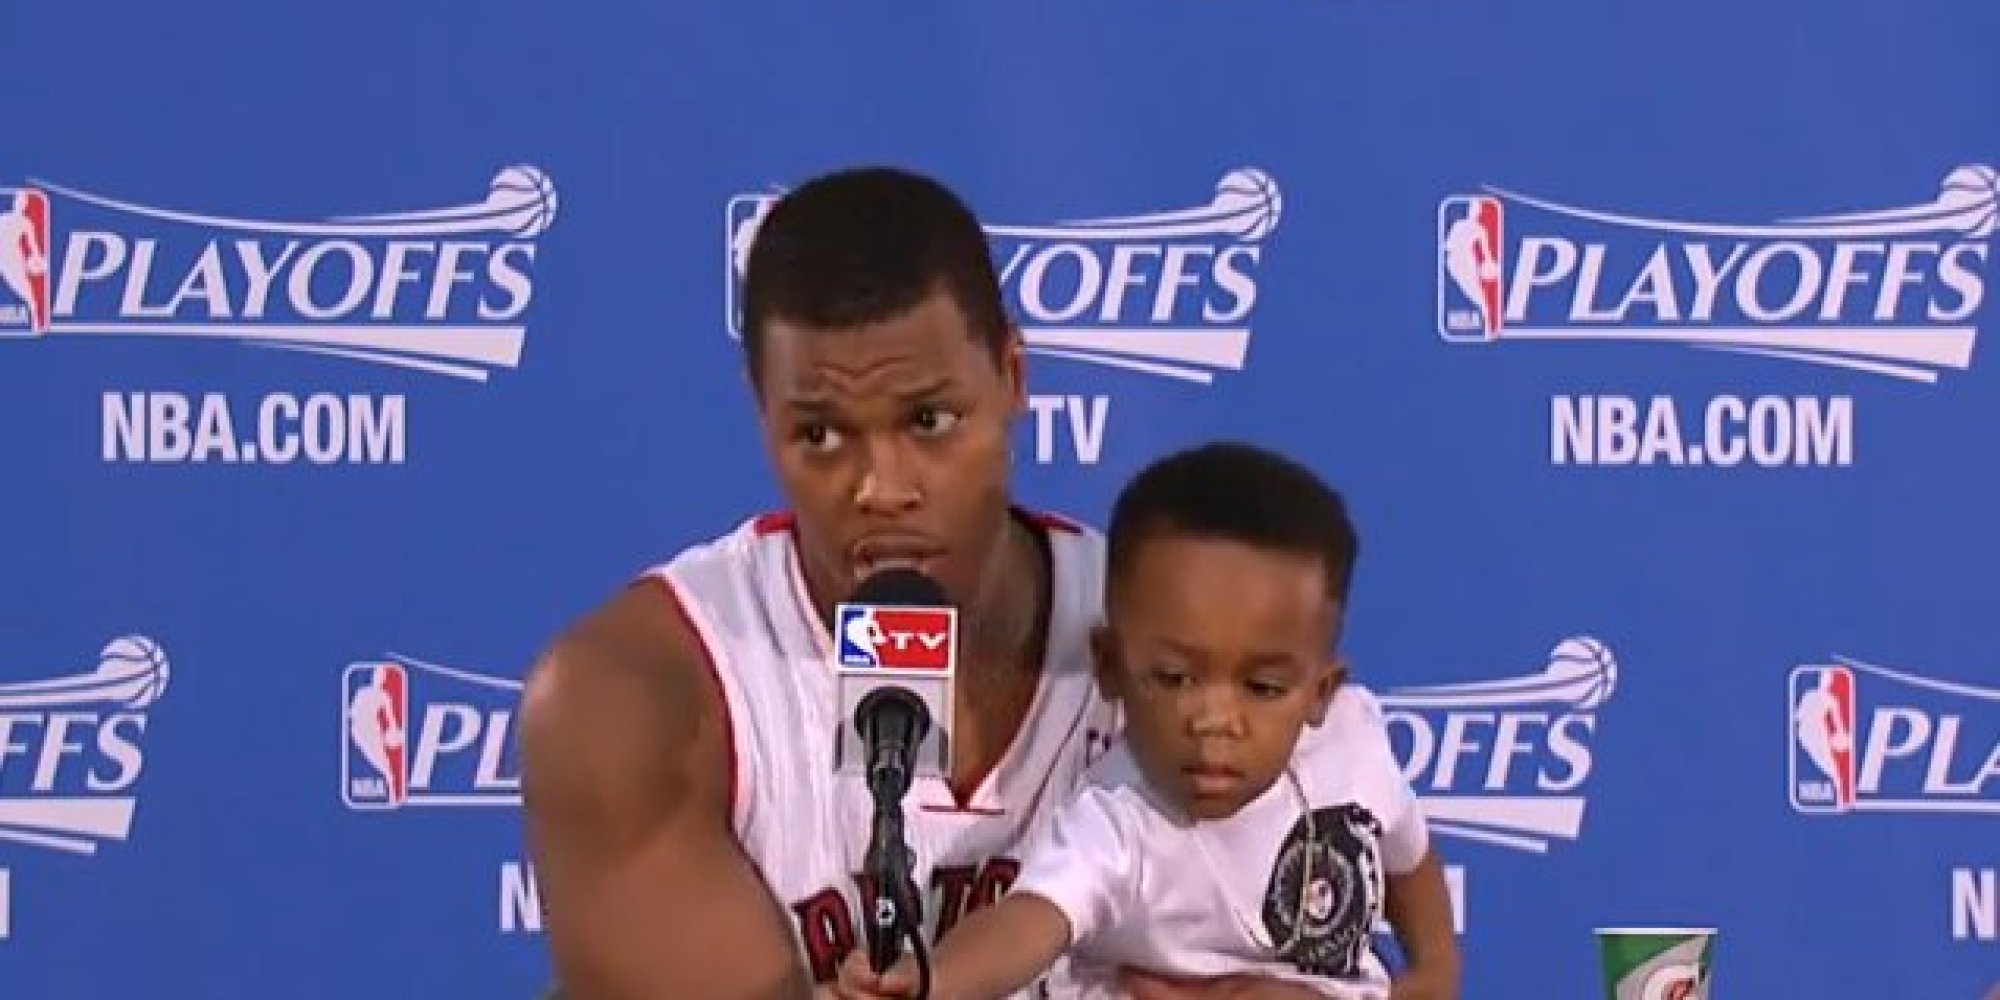 Photo of Kyle Lowry & his  Son  Karter Lowry